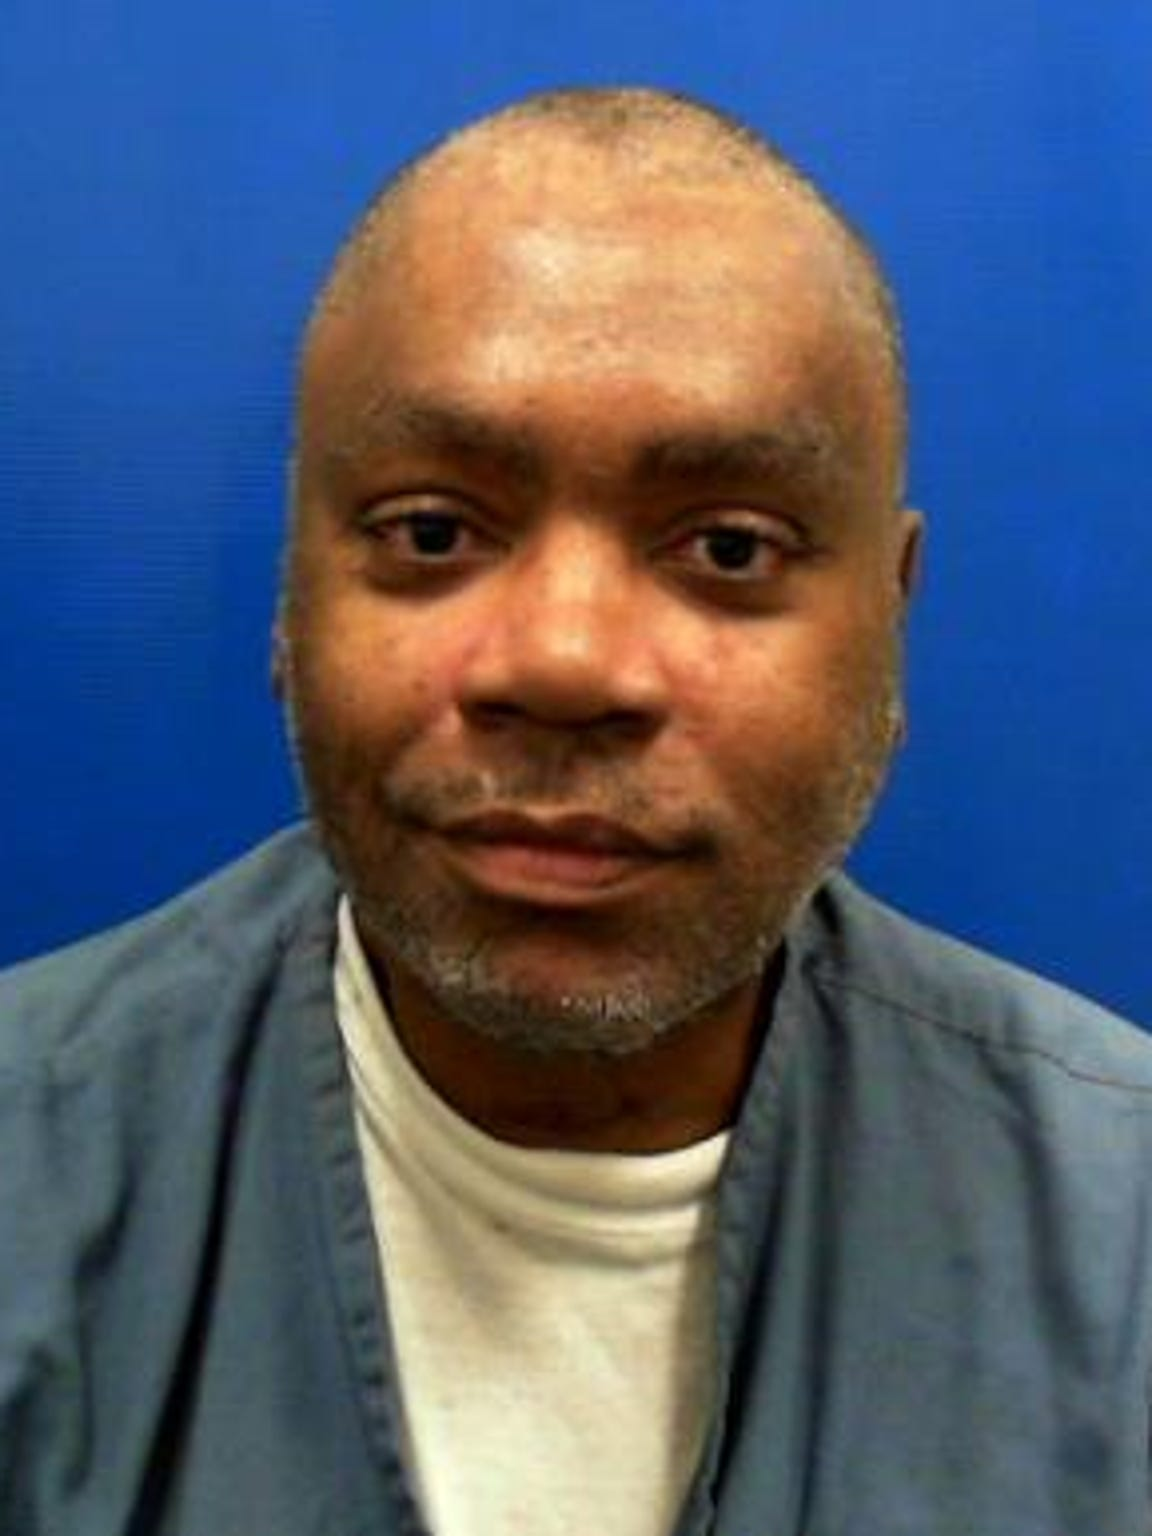 Michael Poole beat his roommate to death at the South Dade Nursing and Rehabilitation Center in Miami in 2013.